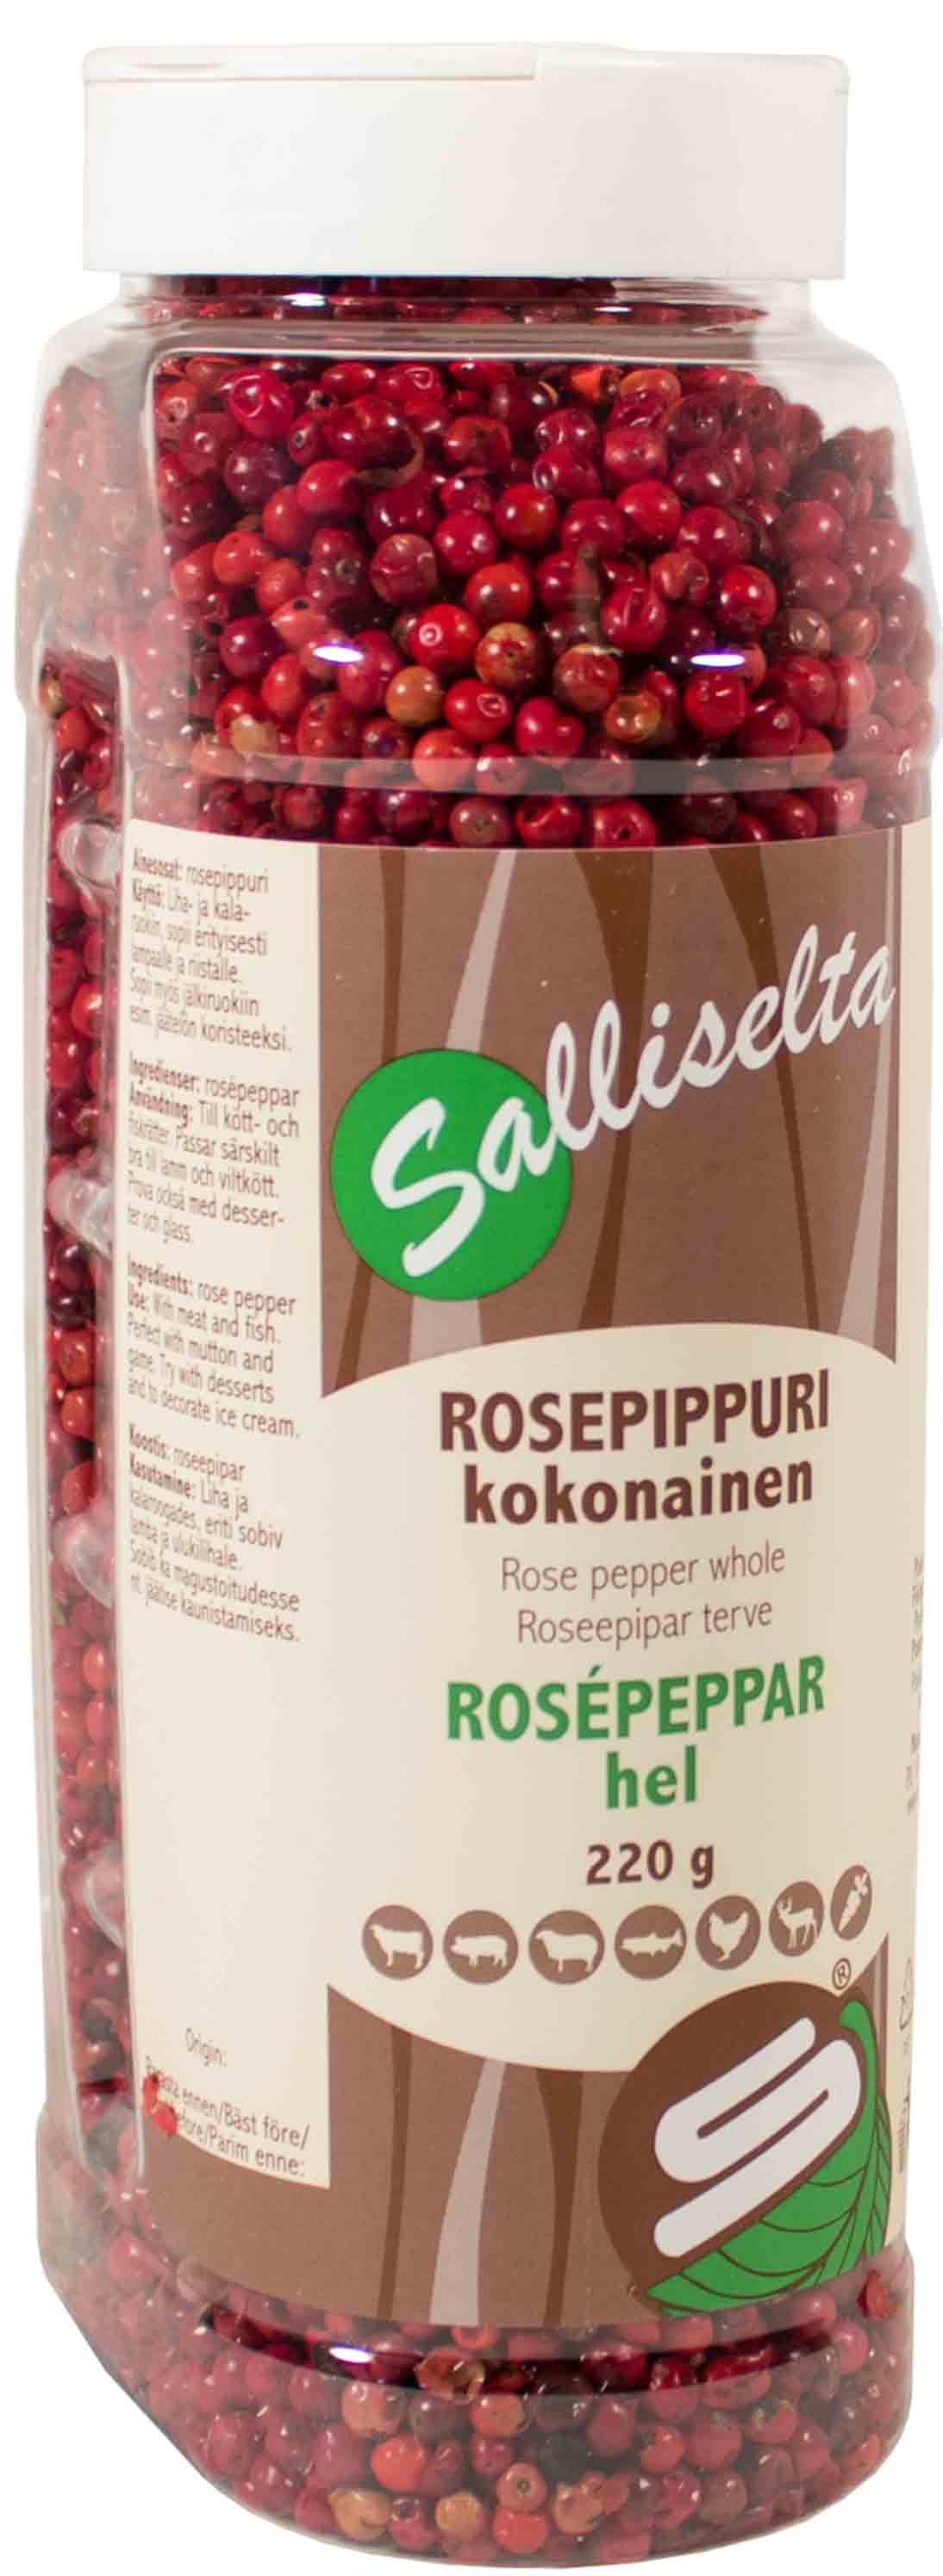 Rose pepper whole 220g